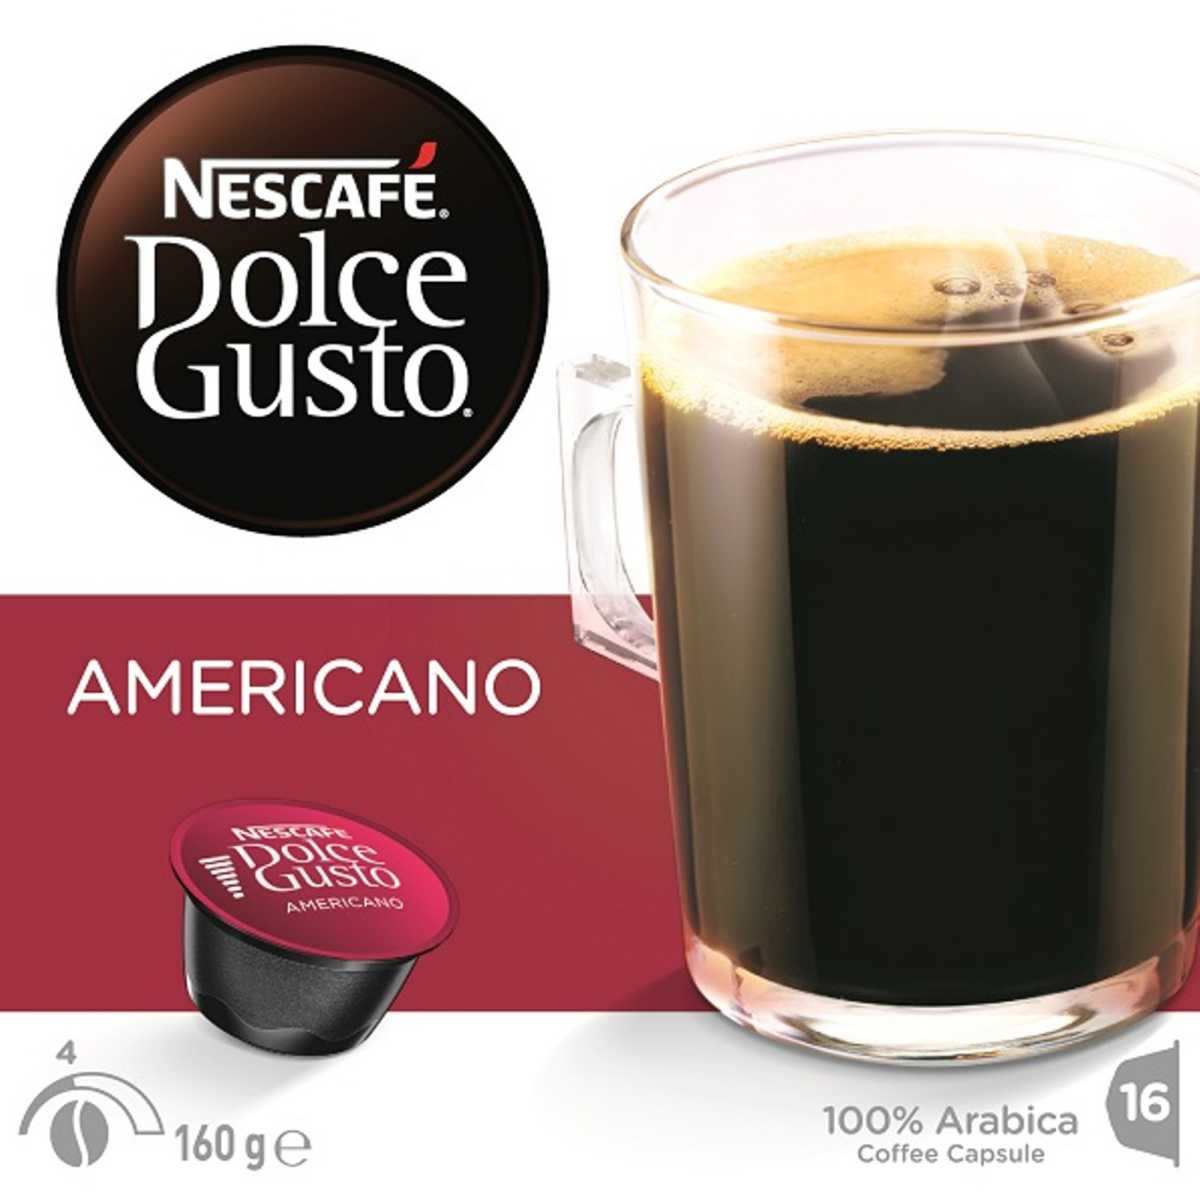 Americano Coffee To Go Nescafe Dolce Gusto Americano 16 Pack Big W